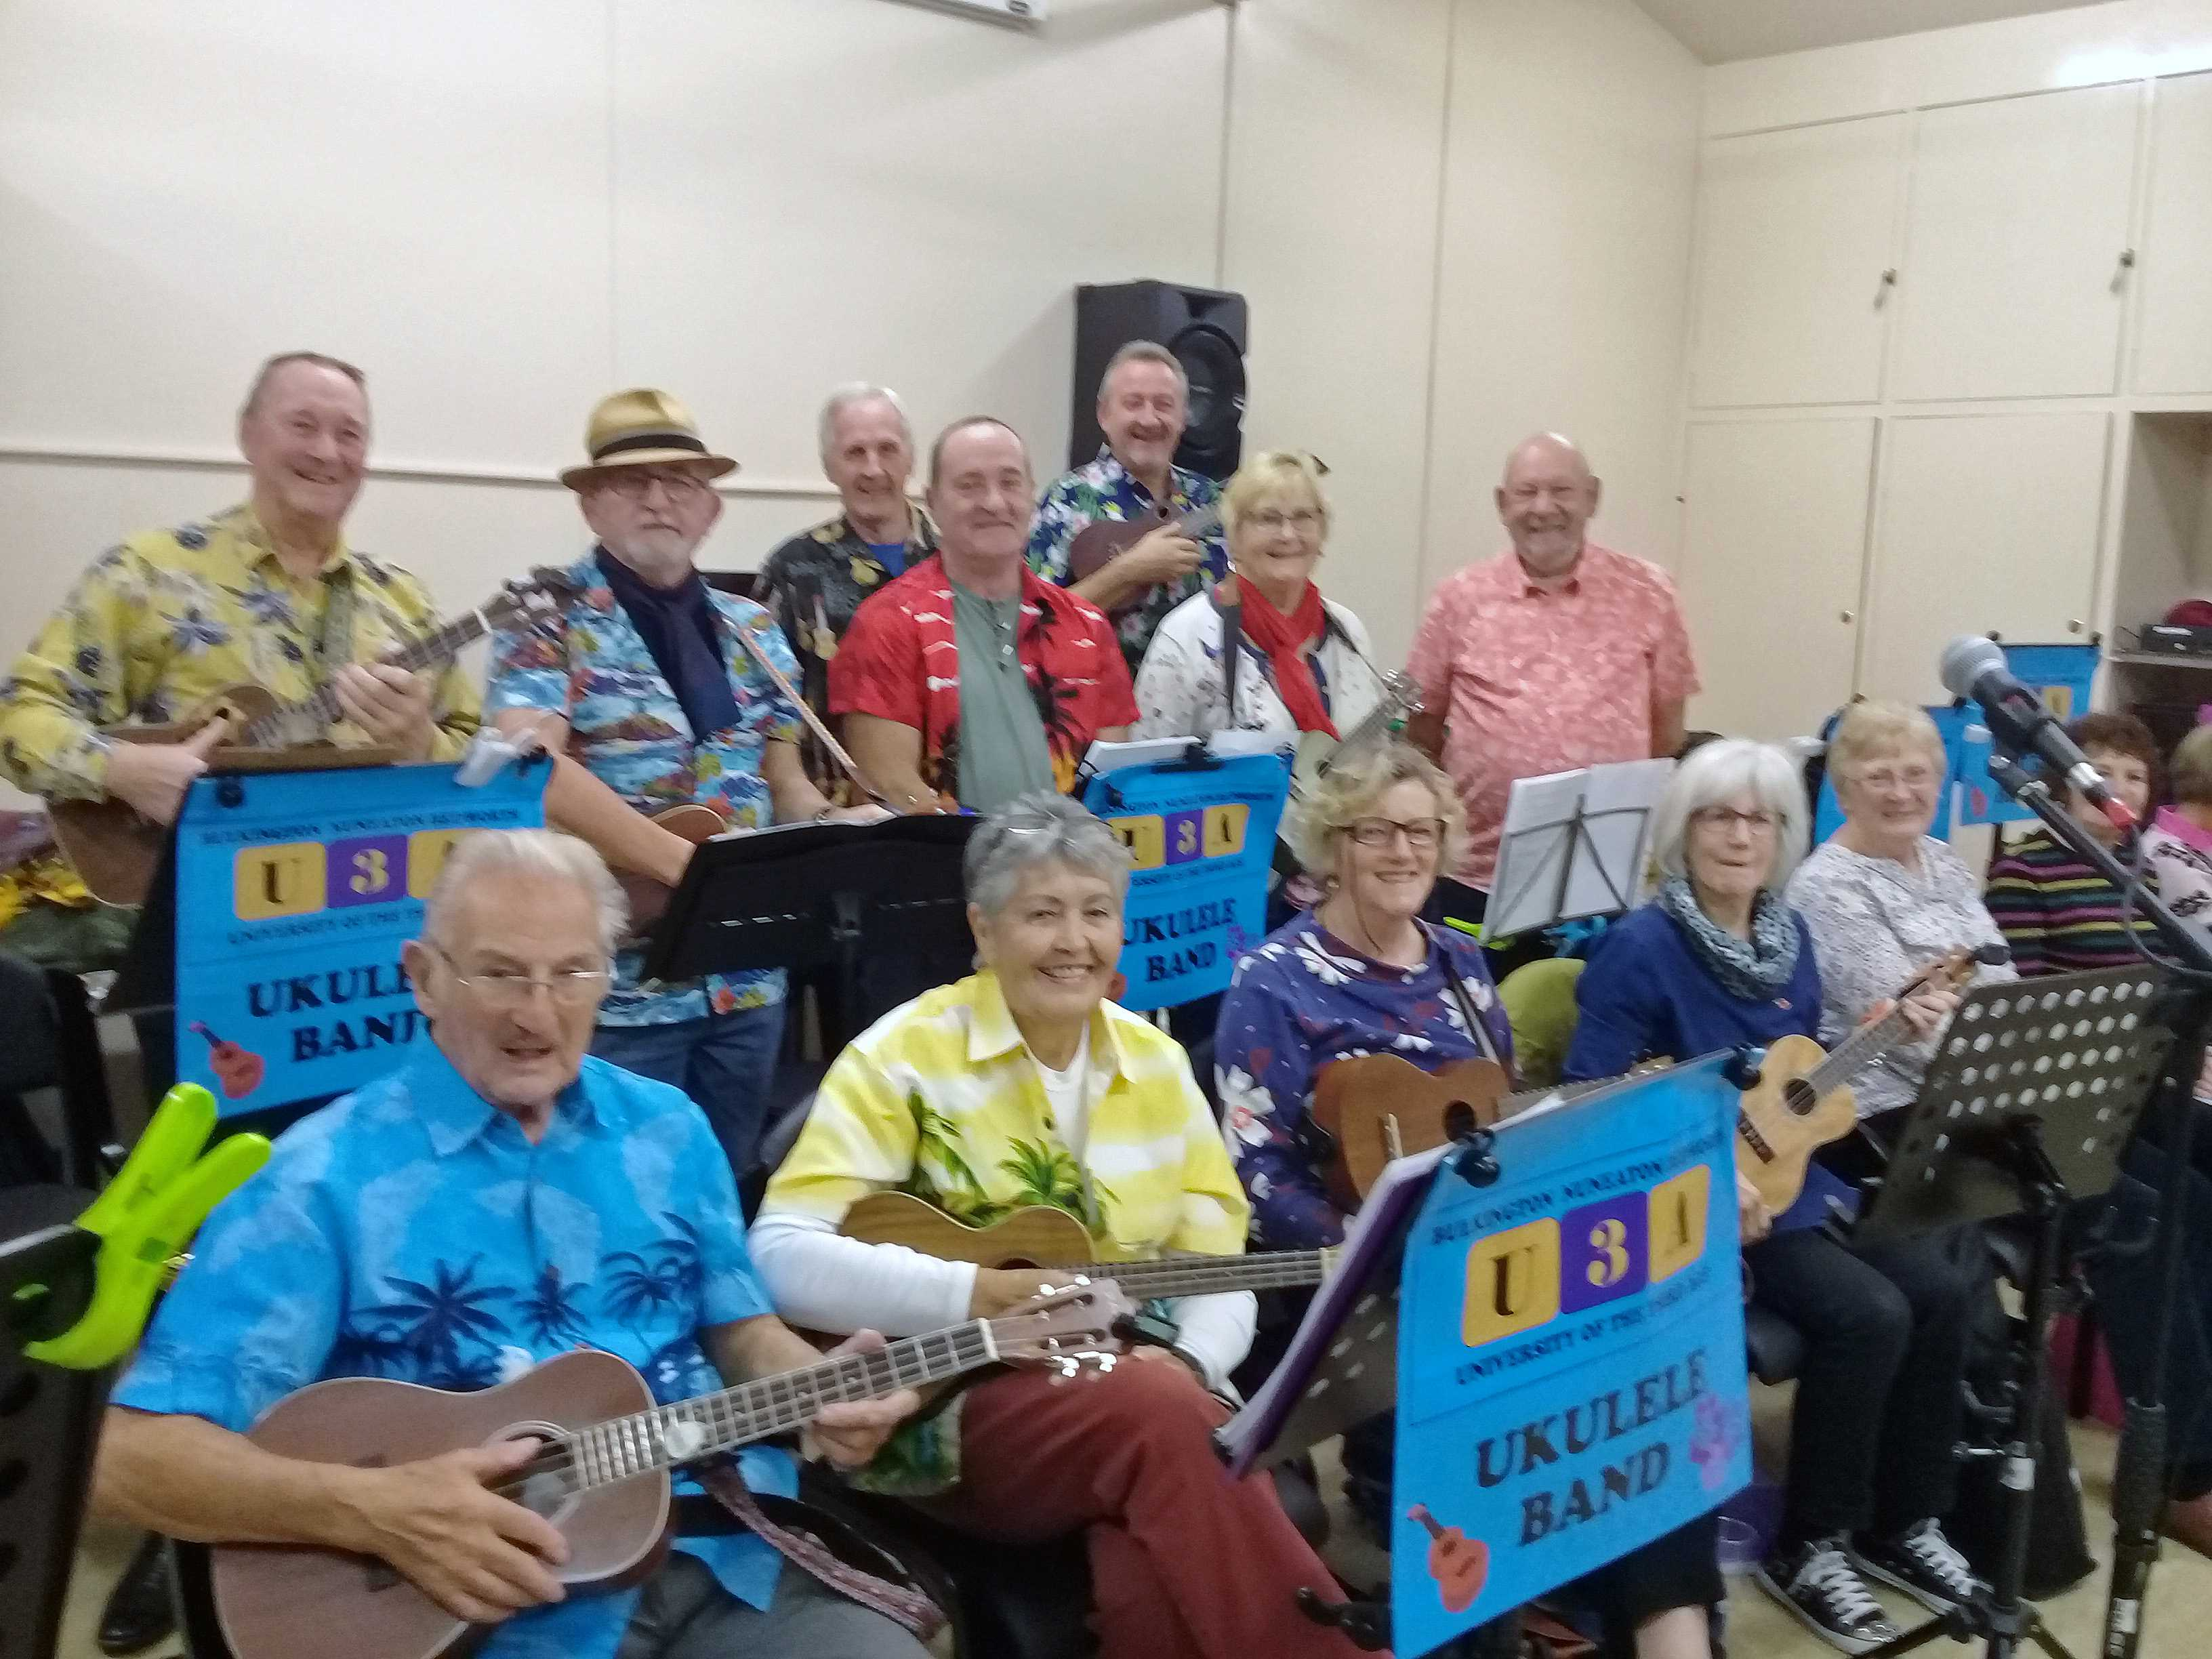 The Ukulele Band